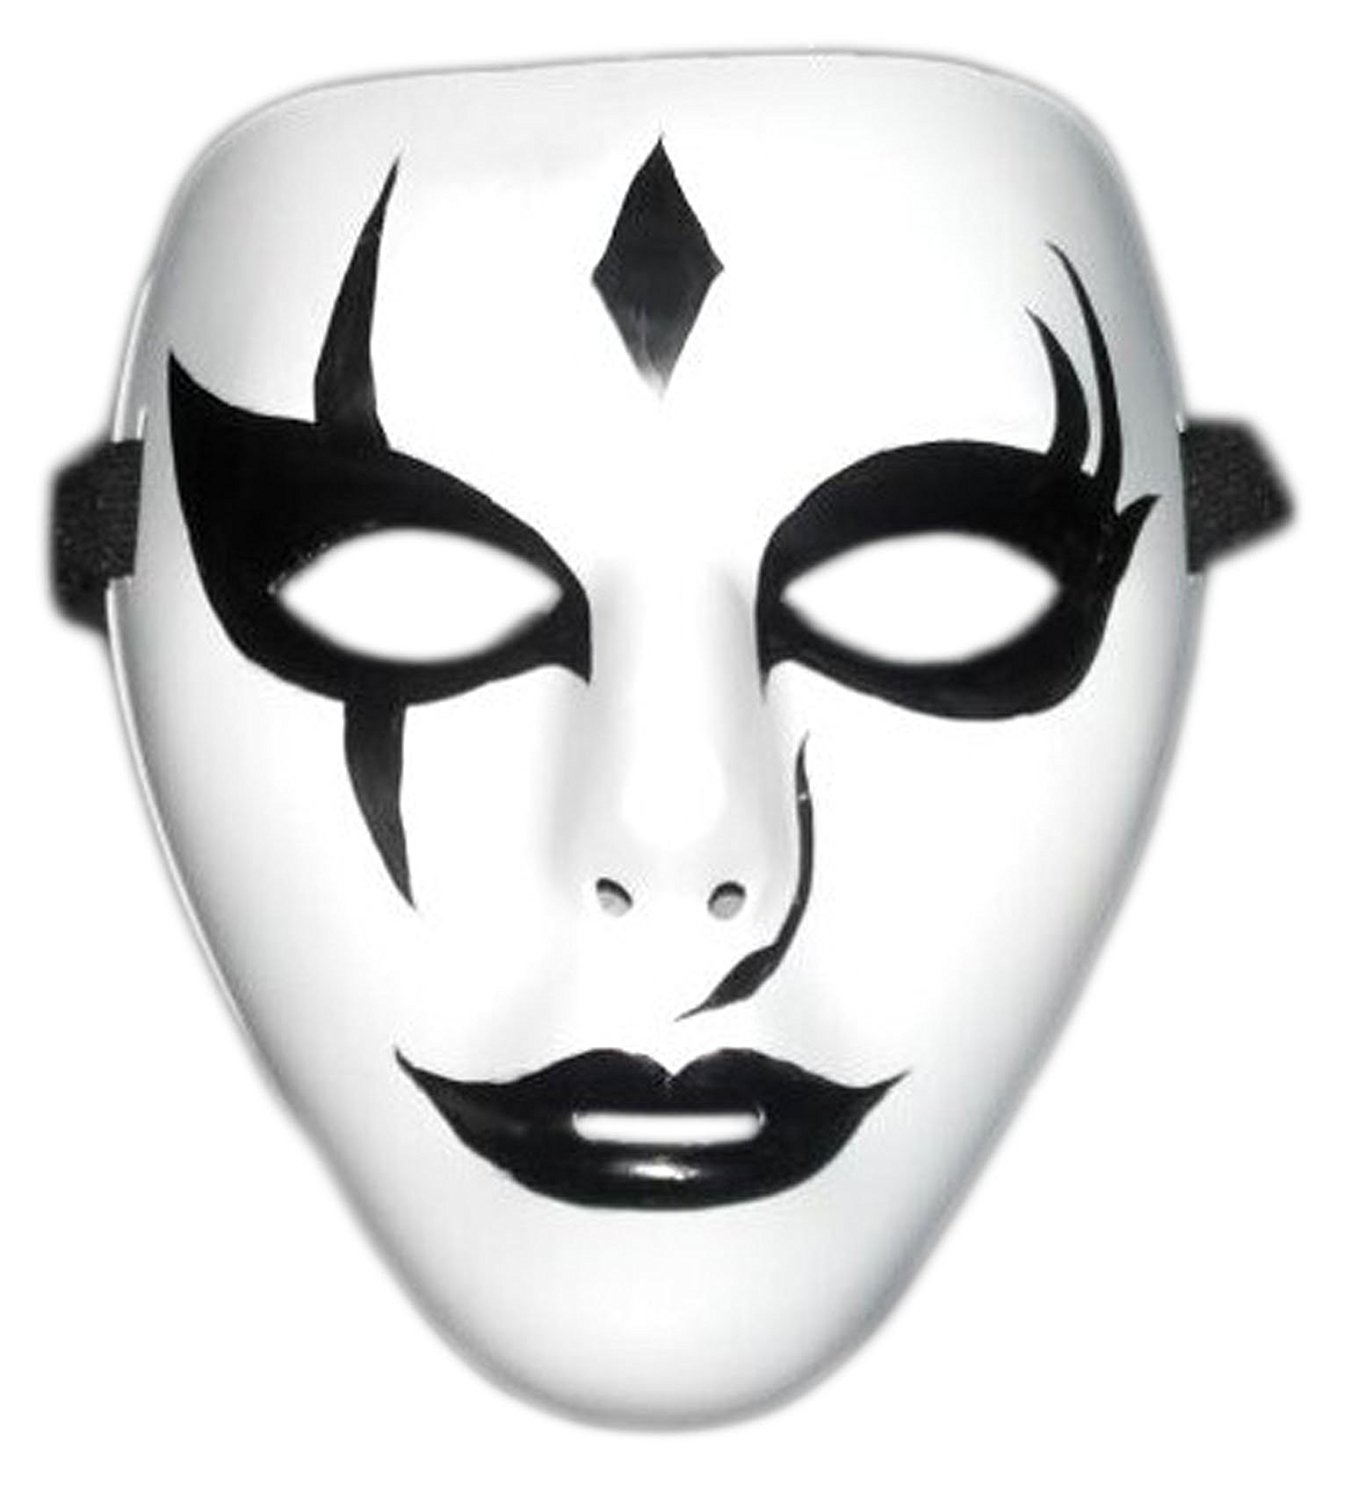 Buy Ilucky Halloween Mask Hand-drawing Mask for Women 2 in Cheap ... 533c85fd84